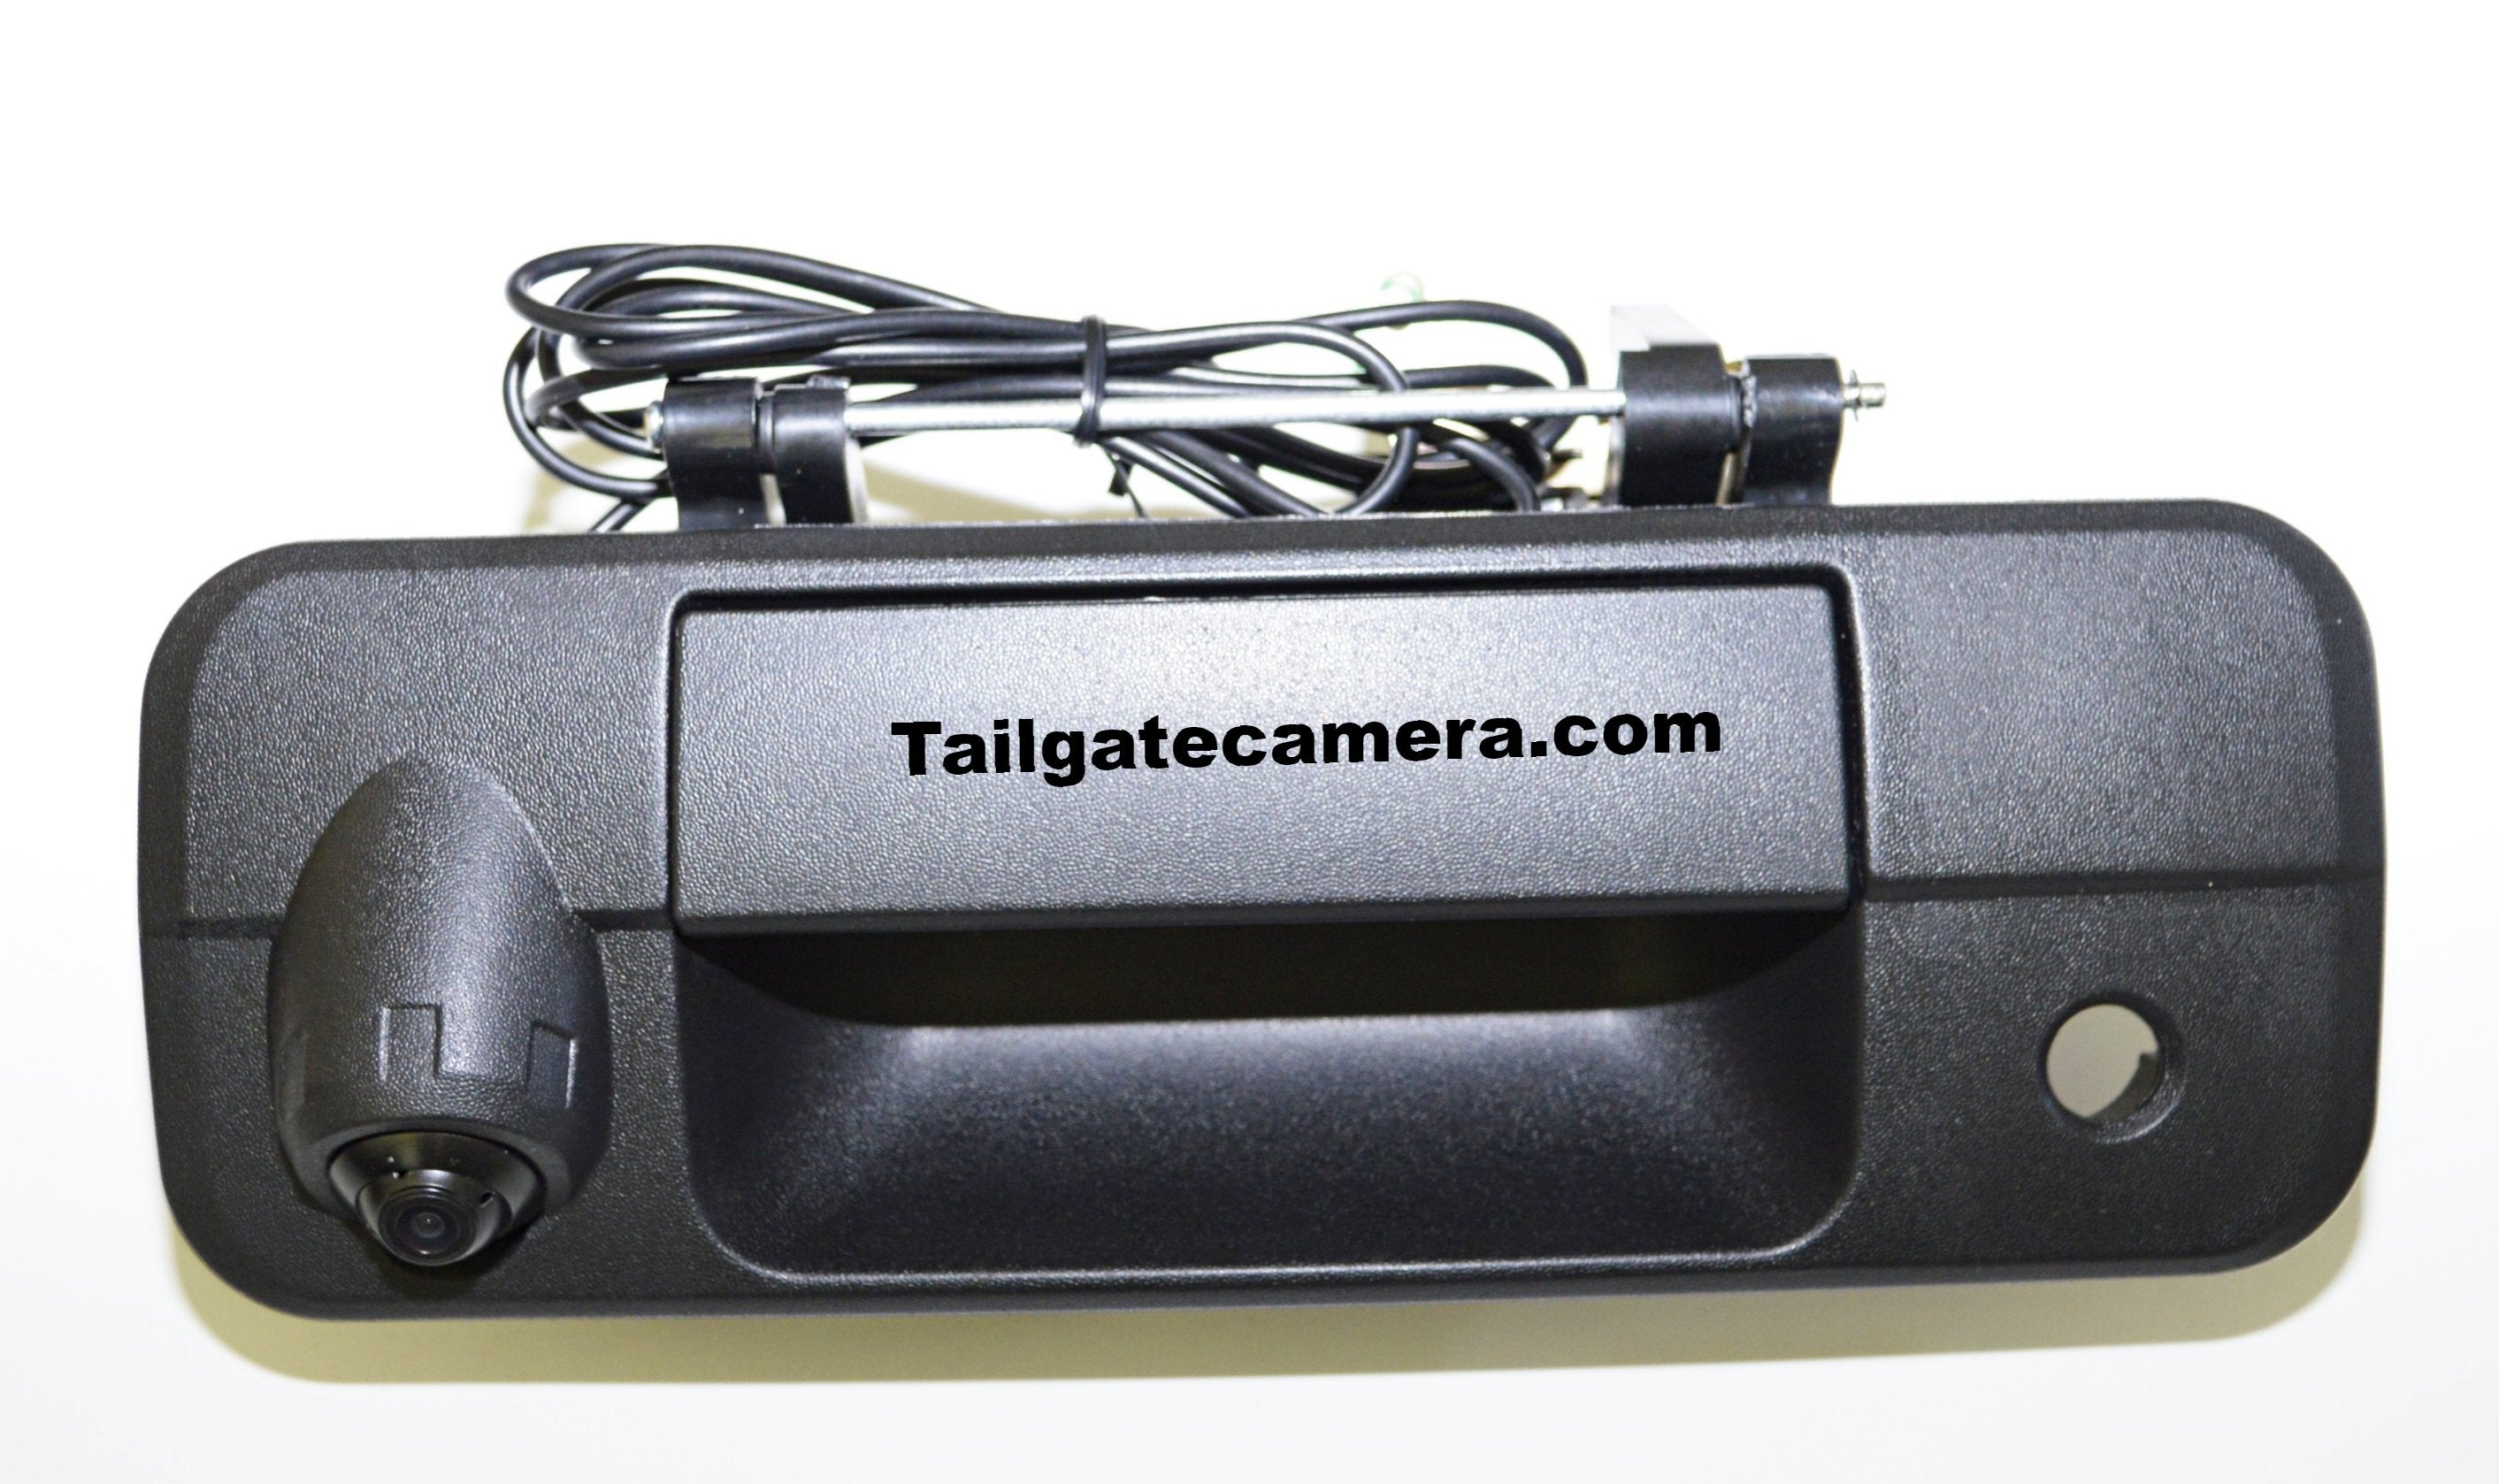 2007-2013 TOYOTA TUNDRA TAILGATE HANDLE WITH ADJUSTABLE BACKUP CAMERA